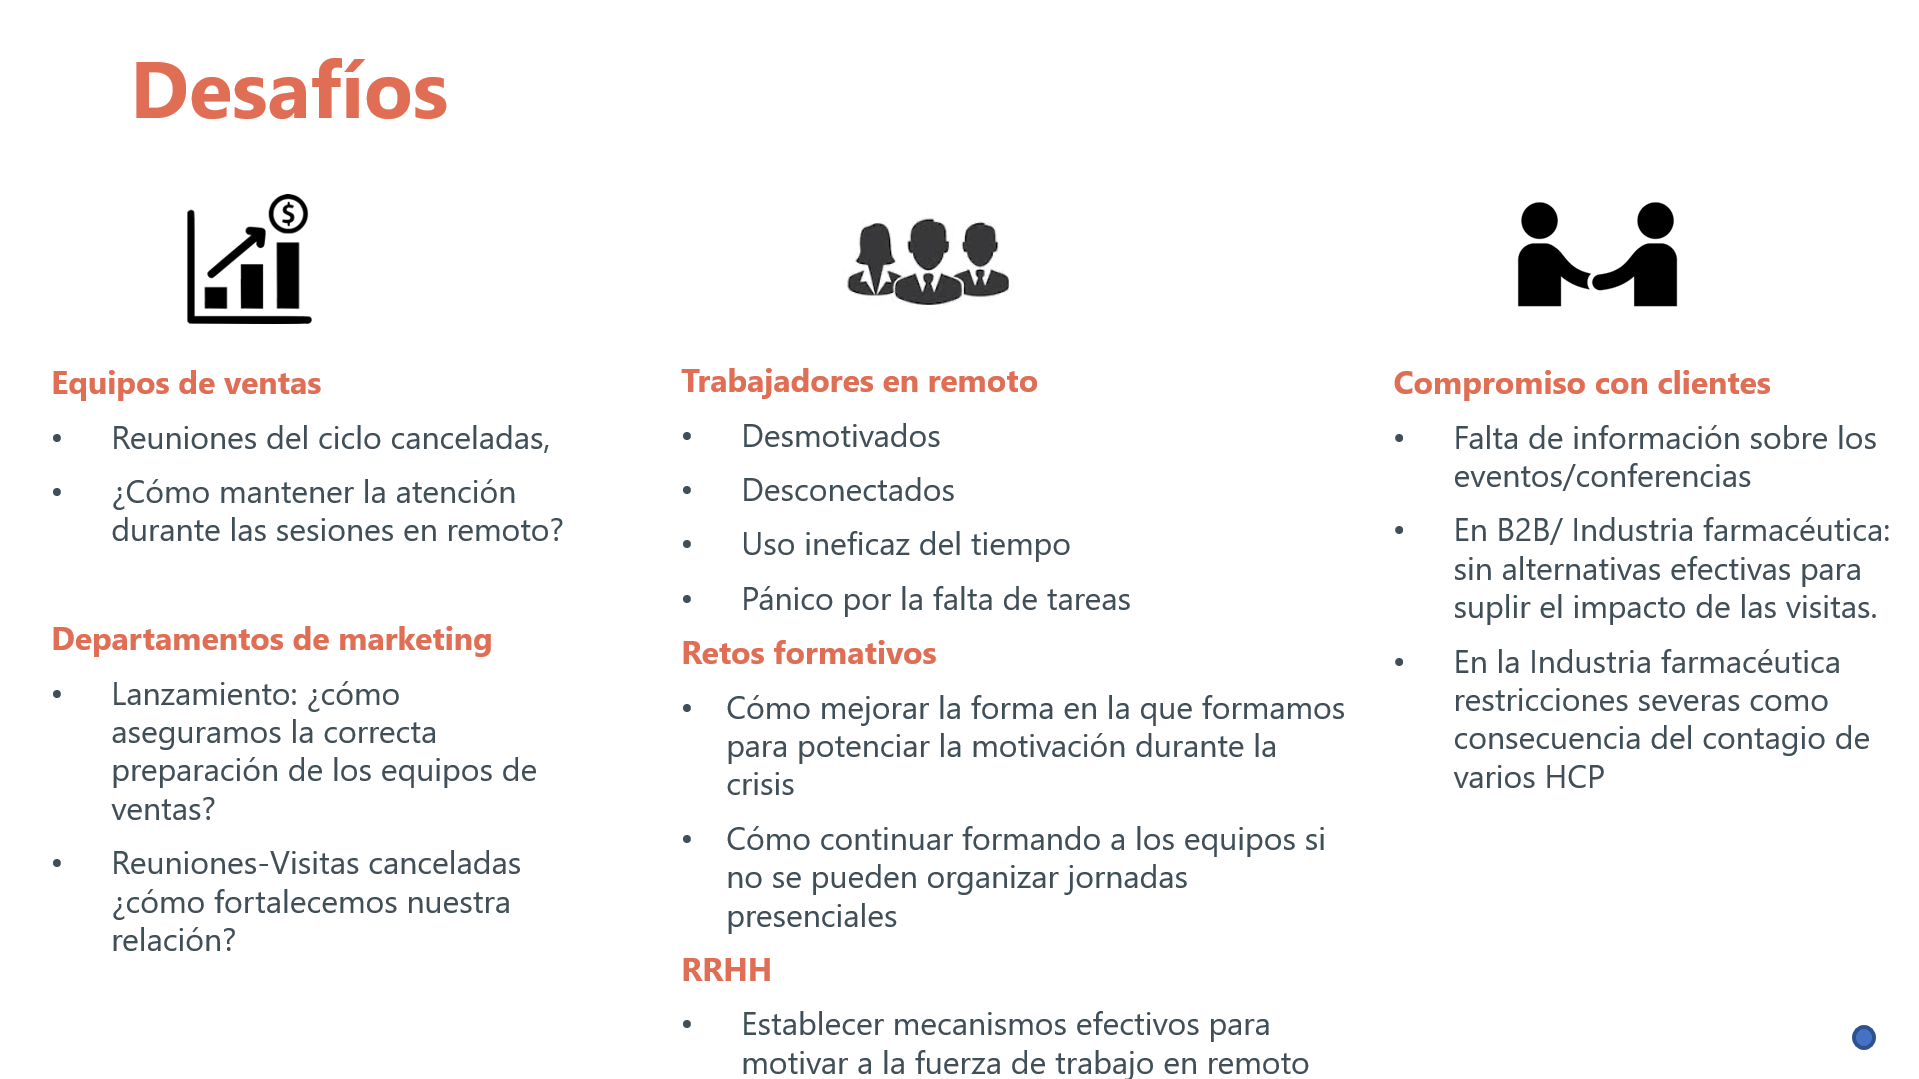 COVID-19 - ventas - remoto - marketing - clientes - compromiso - RRHH - retos - formativos